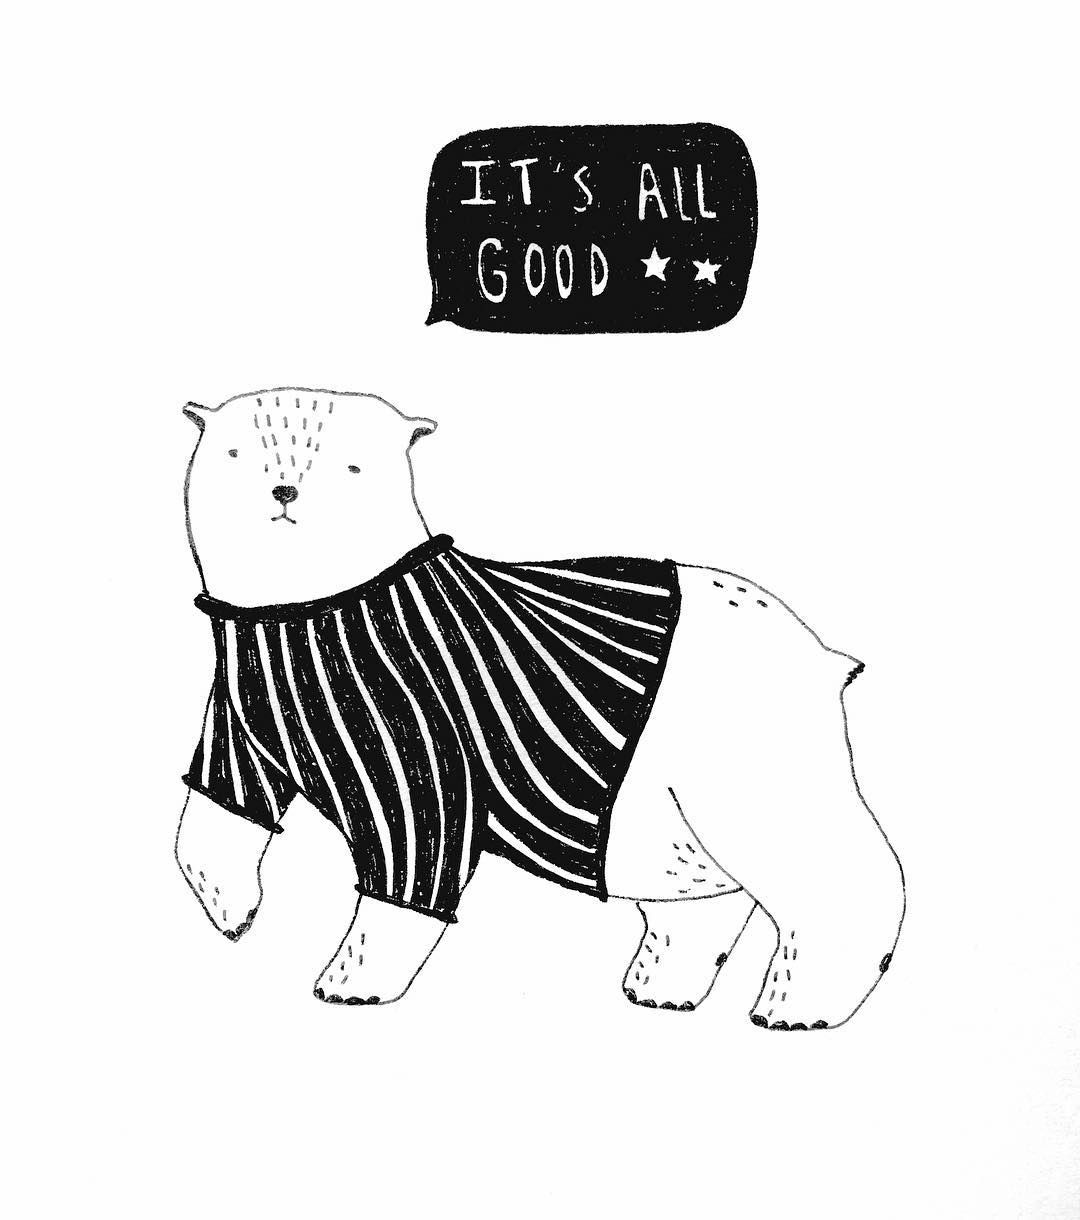 #dontworry  #behappy #allgood #cute #bear #animal #illustration #stripes #pullover #sweatshirt #lettering #drawing #freehand #blackandwhite #kids #kidsfashion #print #frame #decoration #star #oso #berlin #zoo #wild #play #design #friday #weekend #kidsdesign #toddler